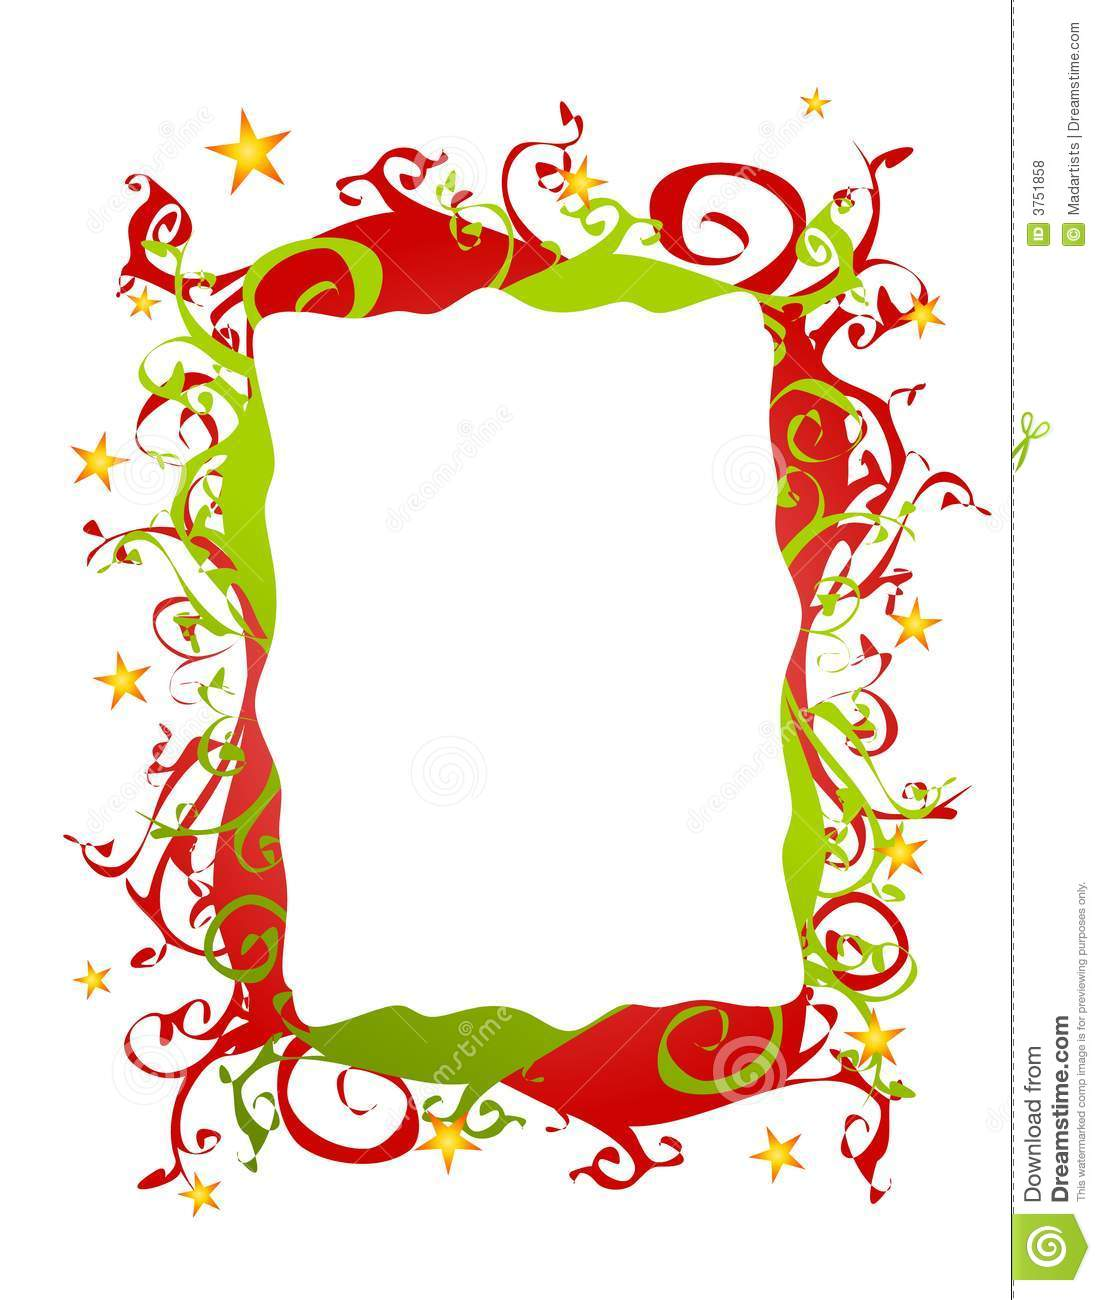 christmas border clipart free #3